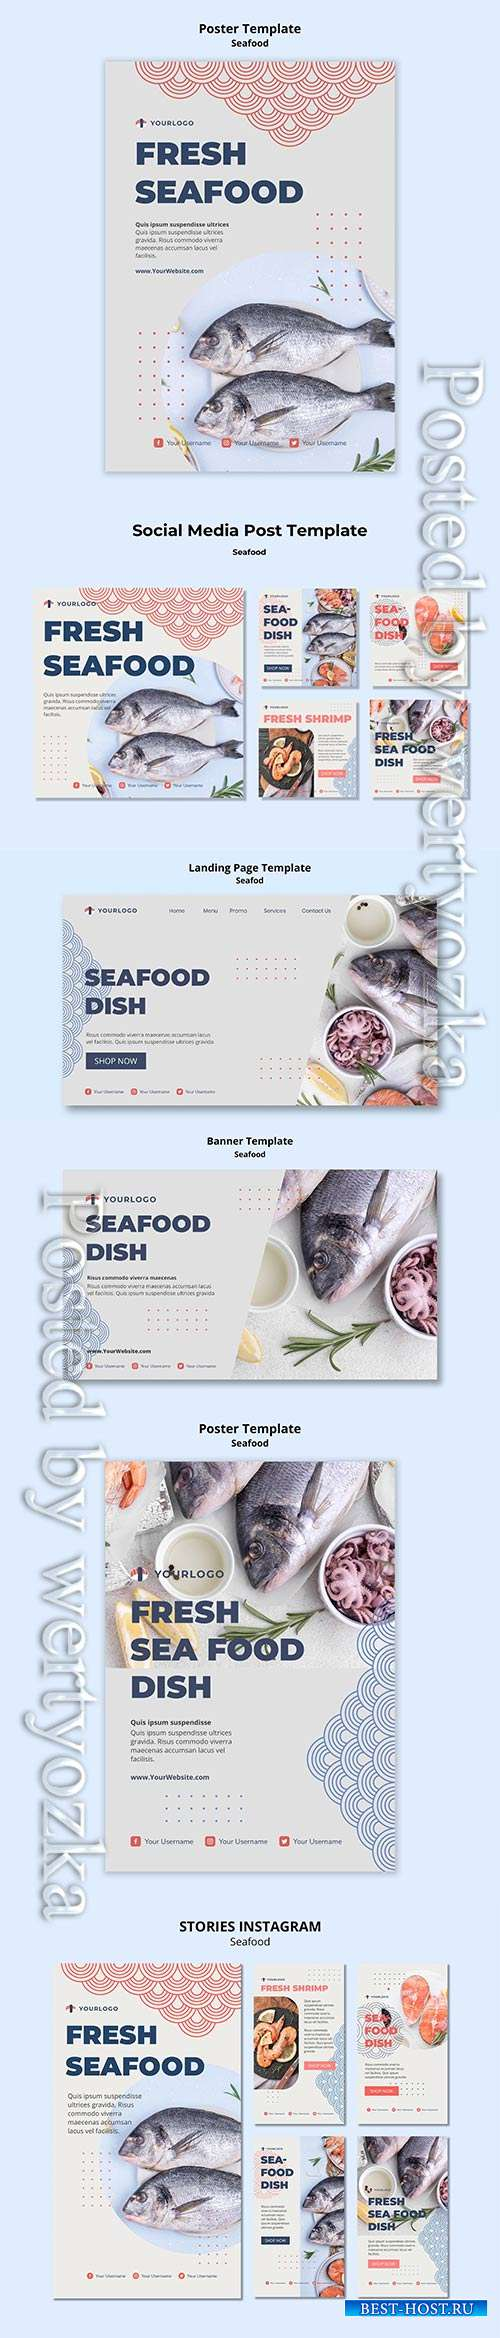 Seafood concept social media post template